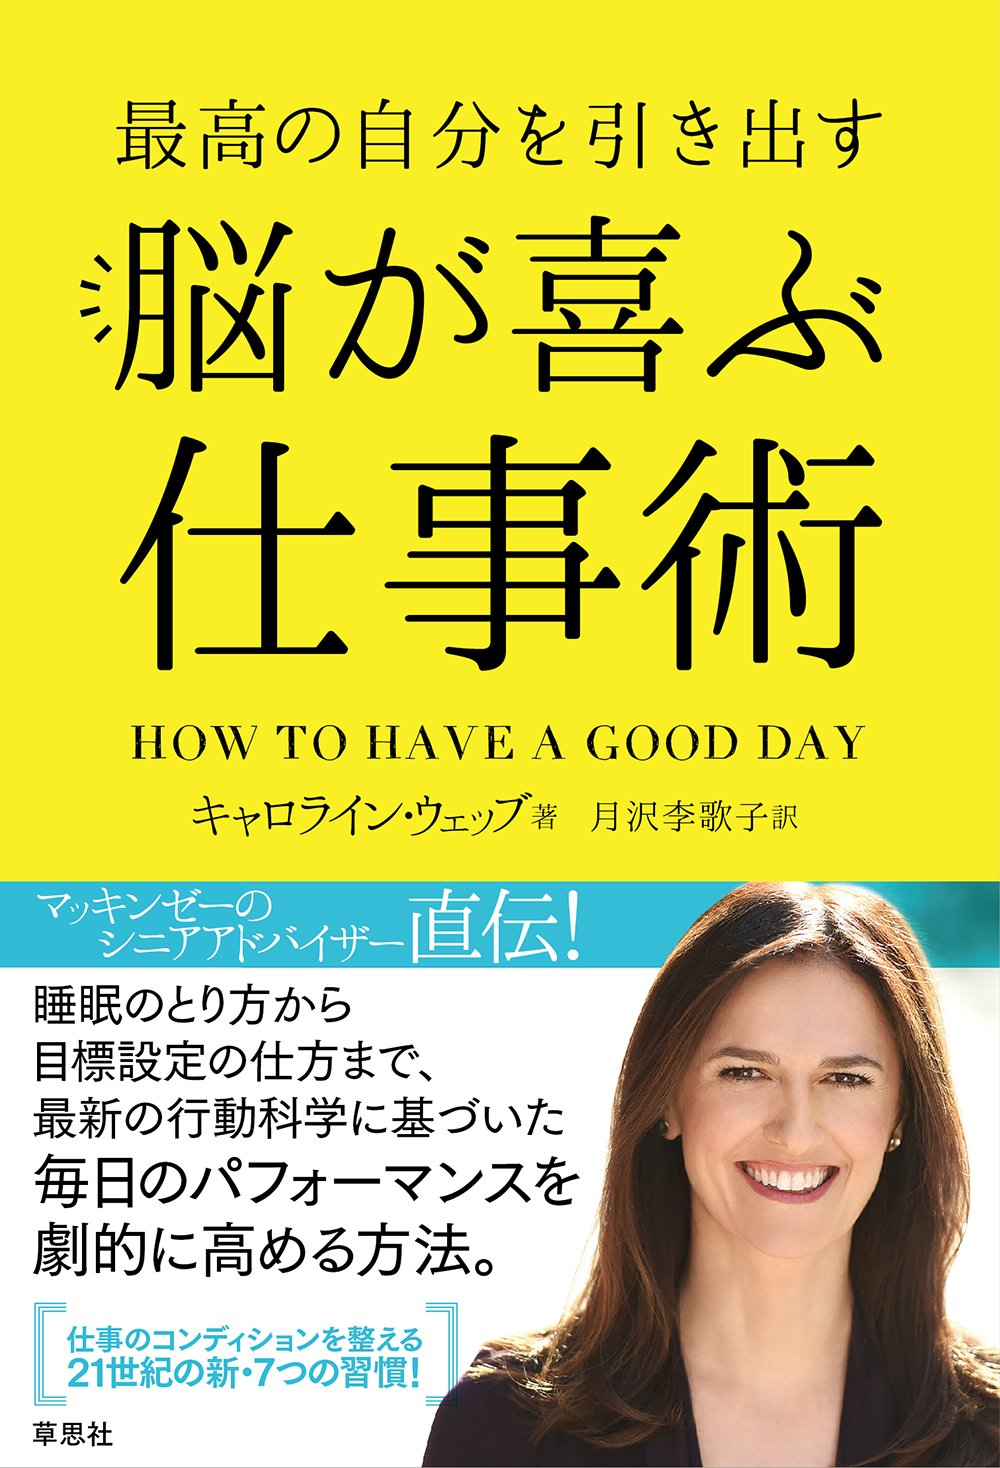 Japanese Edition Book Image